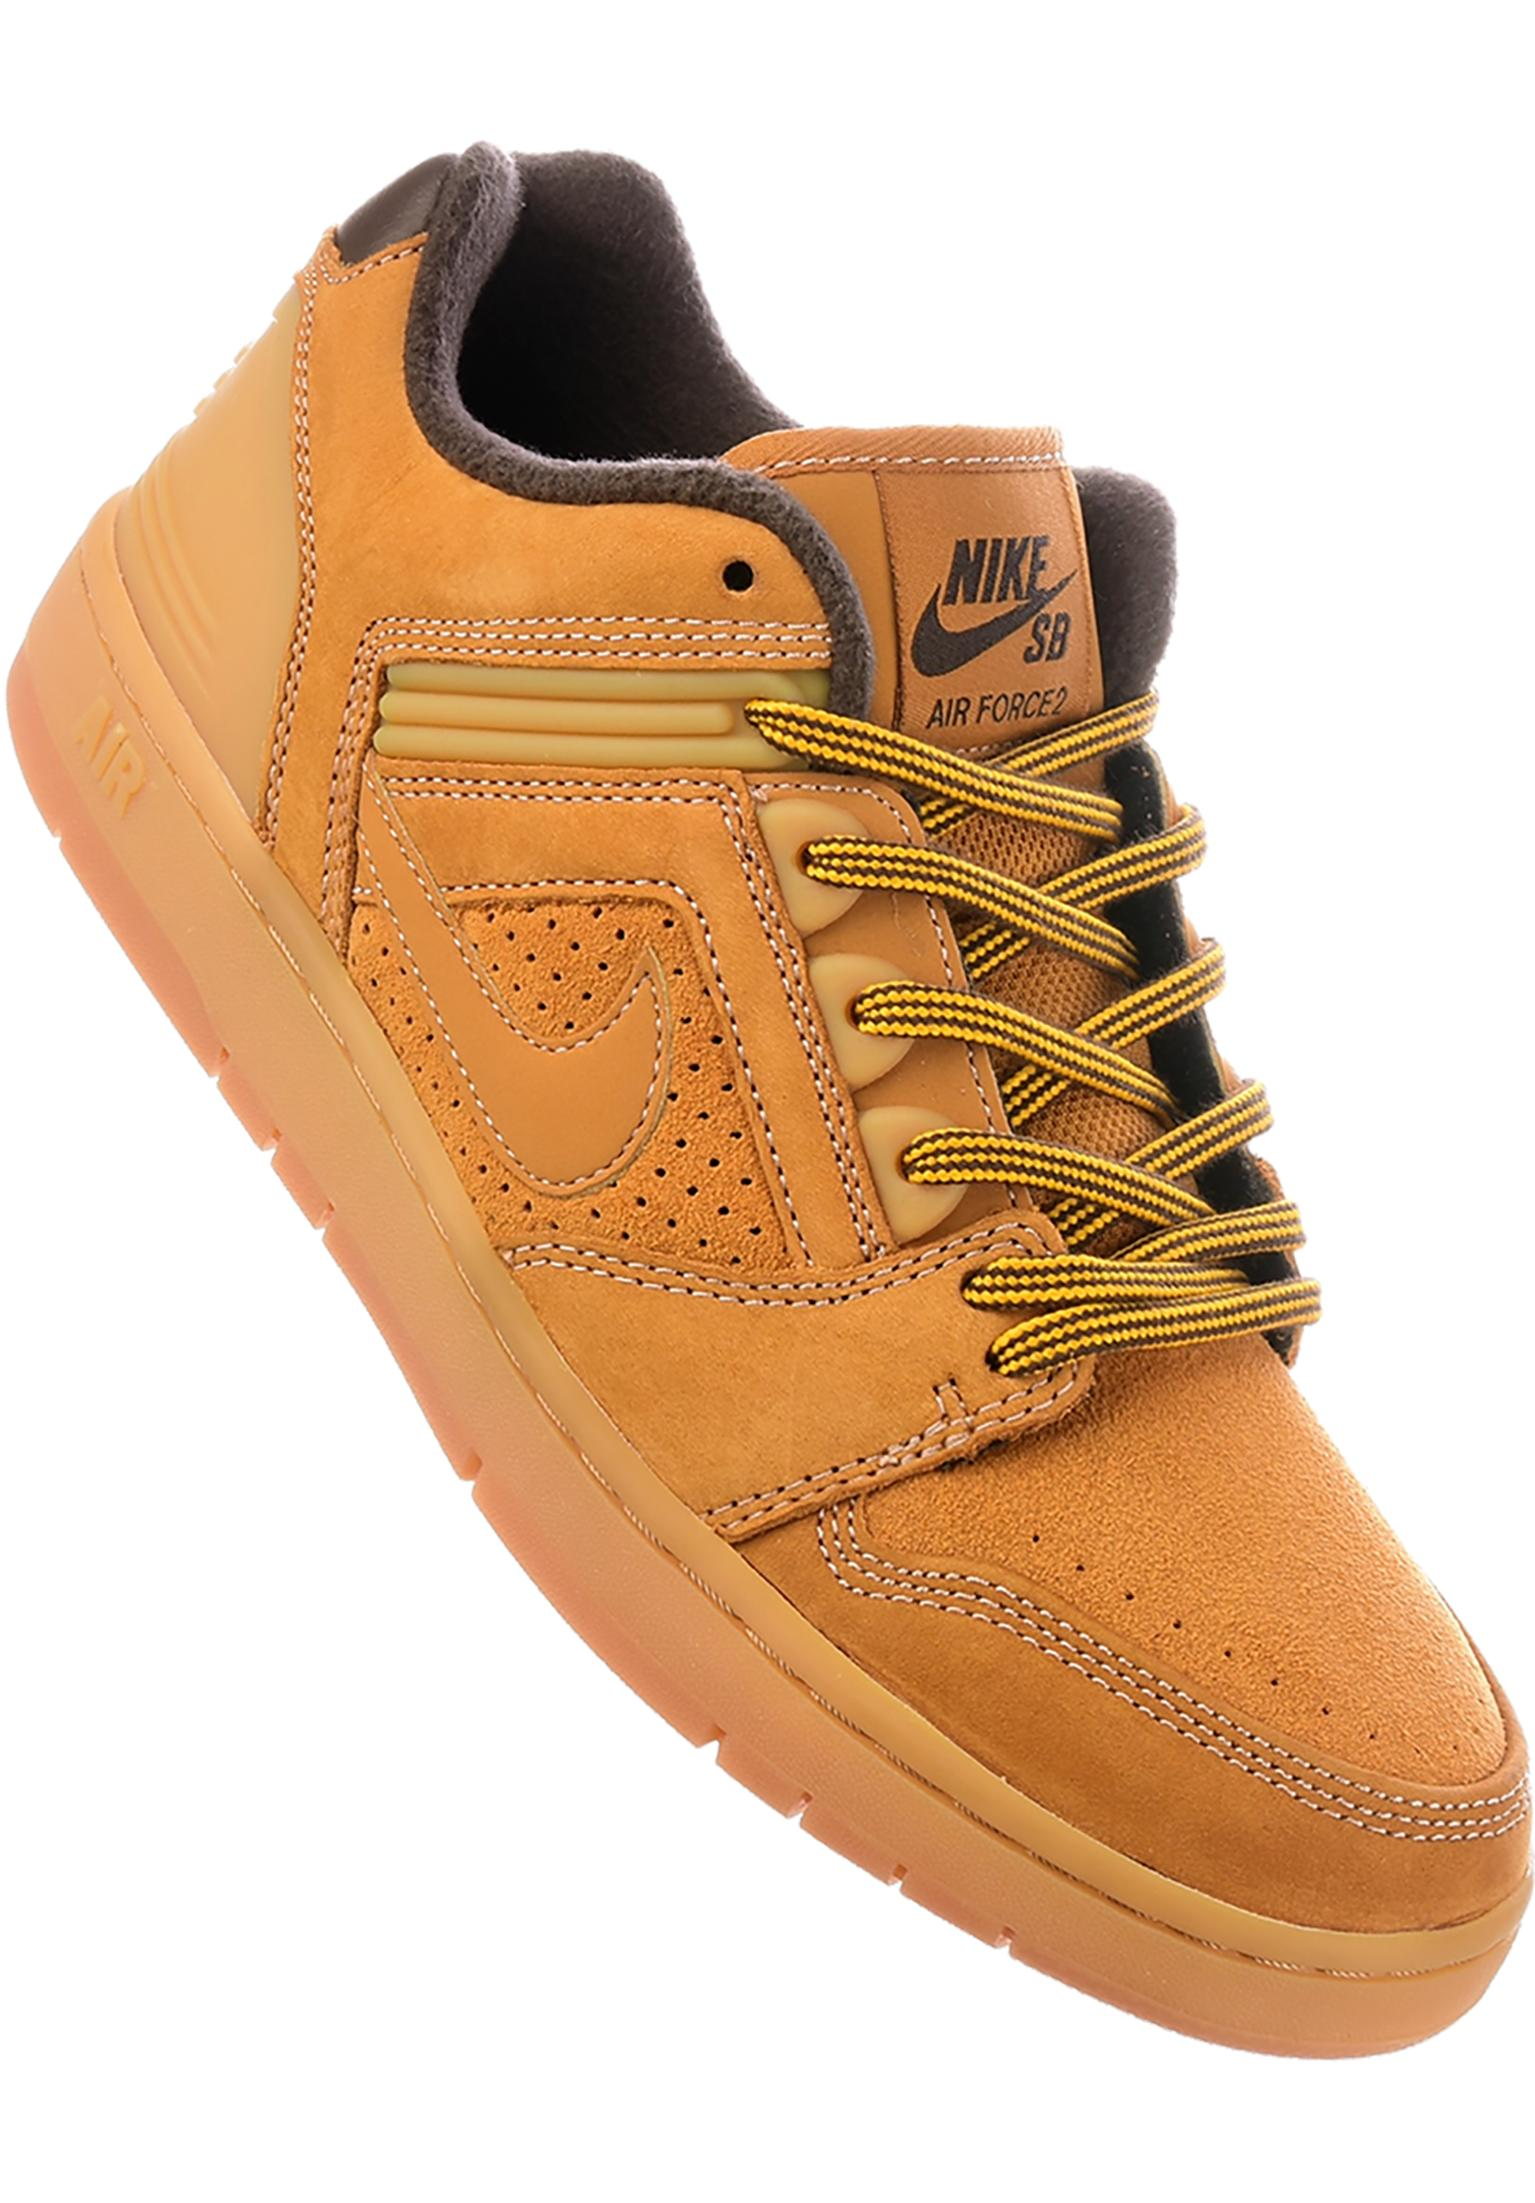 569e585149448 Air Force II Low Premium Nike SB All Shoes in bronze-bronze for Men ...